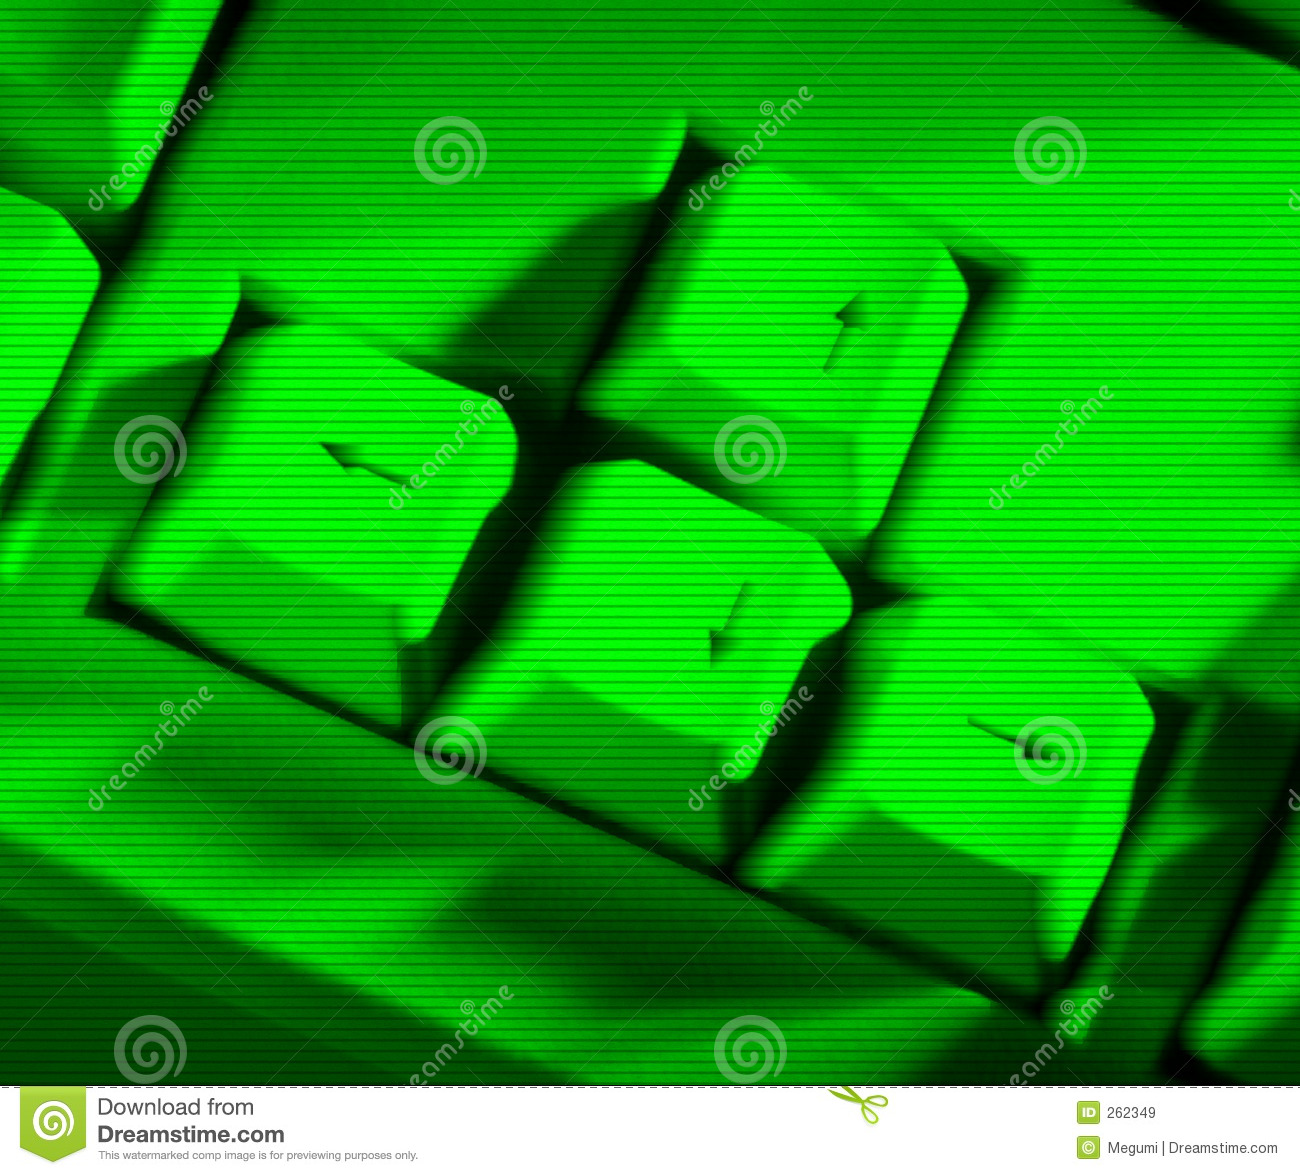 Green Keyboard Stock Image Image Of Screen Computer Keyboard 262349